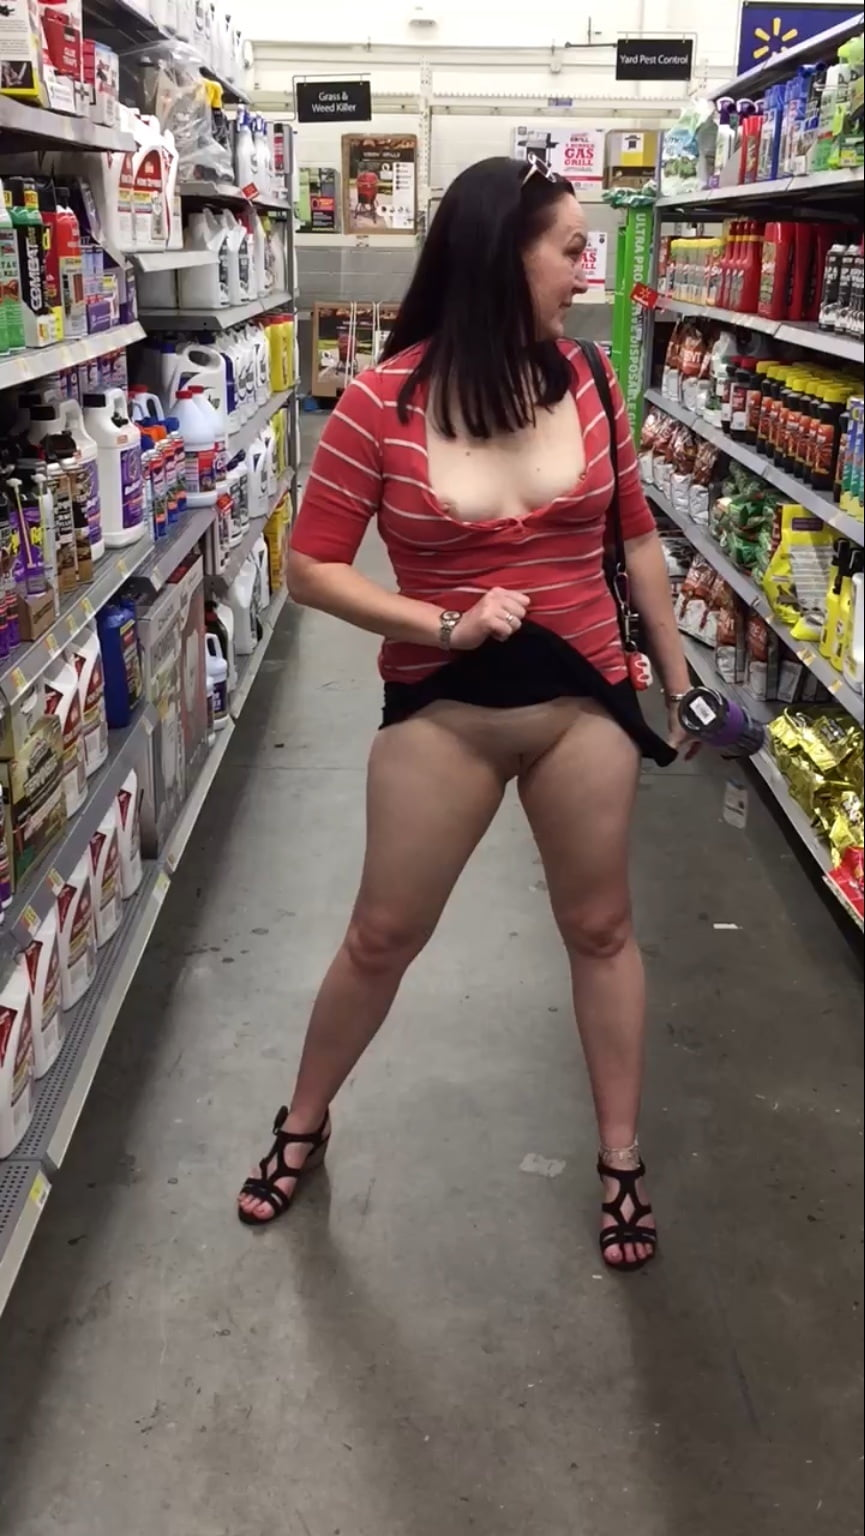 chili-girl-getting-pussy-fucked-in-walmart